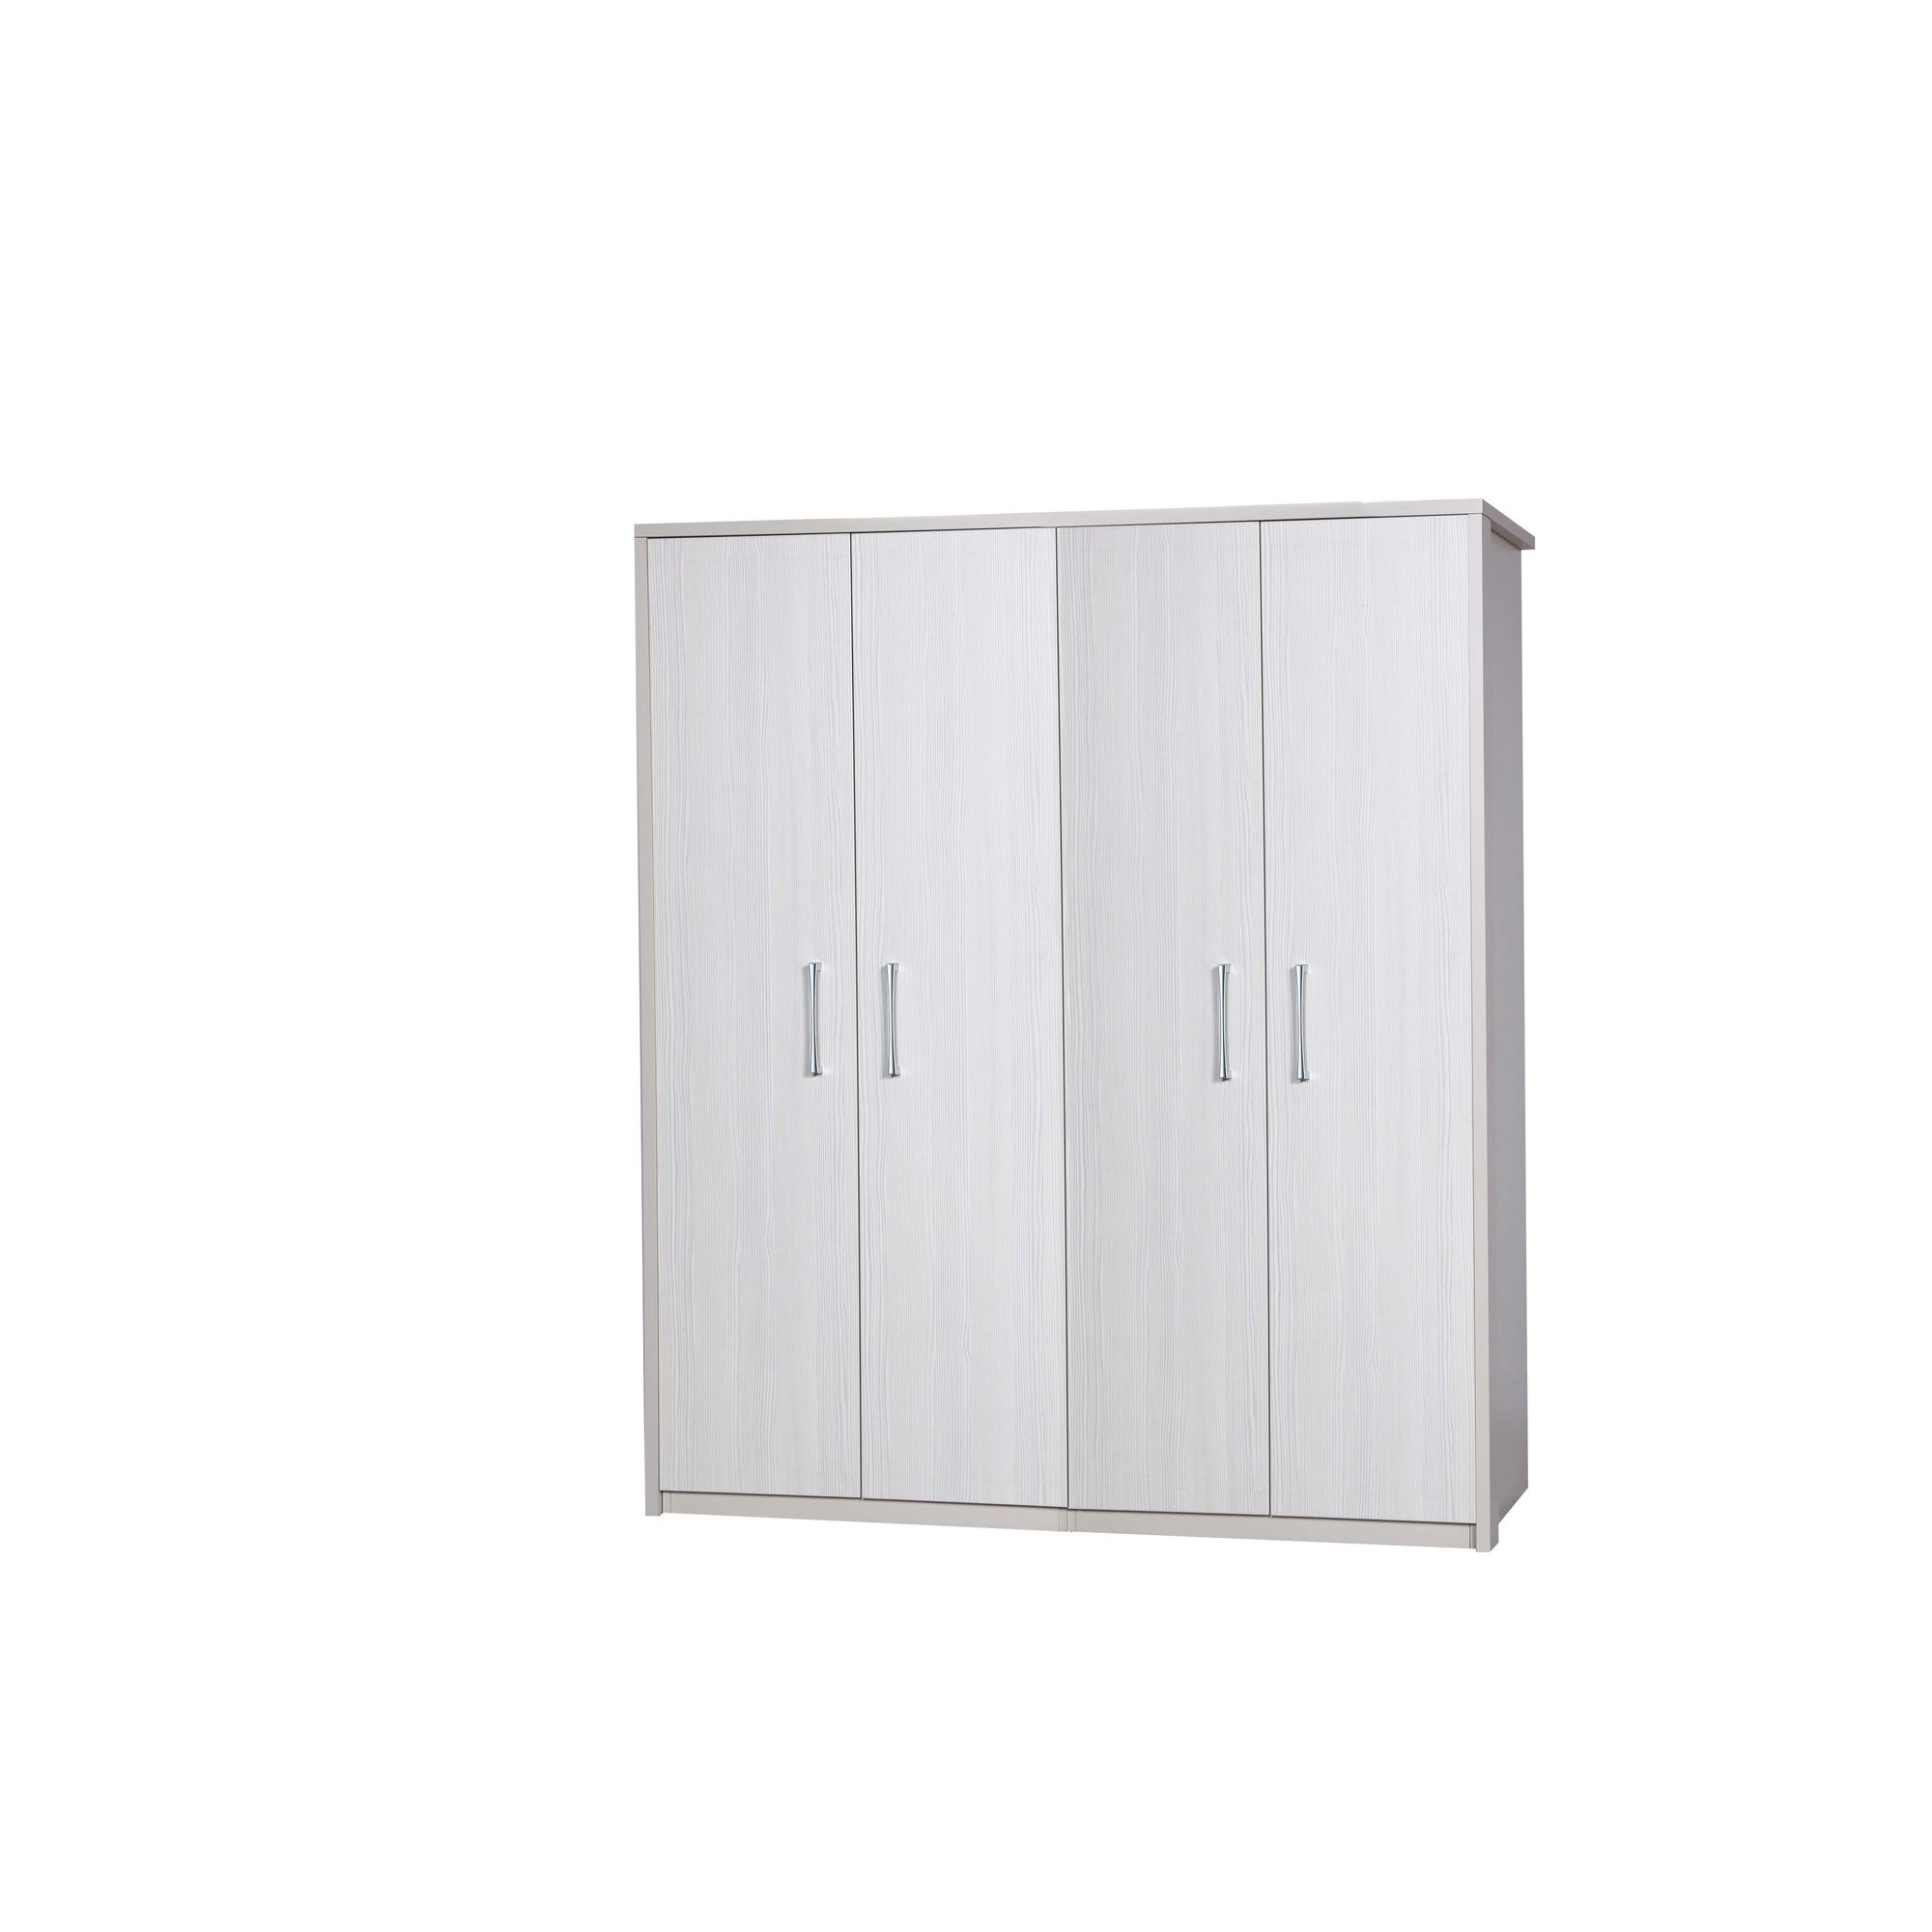 Alto Furniture Avola 4 Door Wardrobe - Cream Carcass With White Avola at Tescos Direct